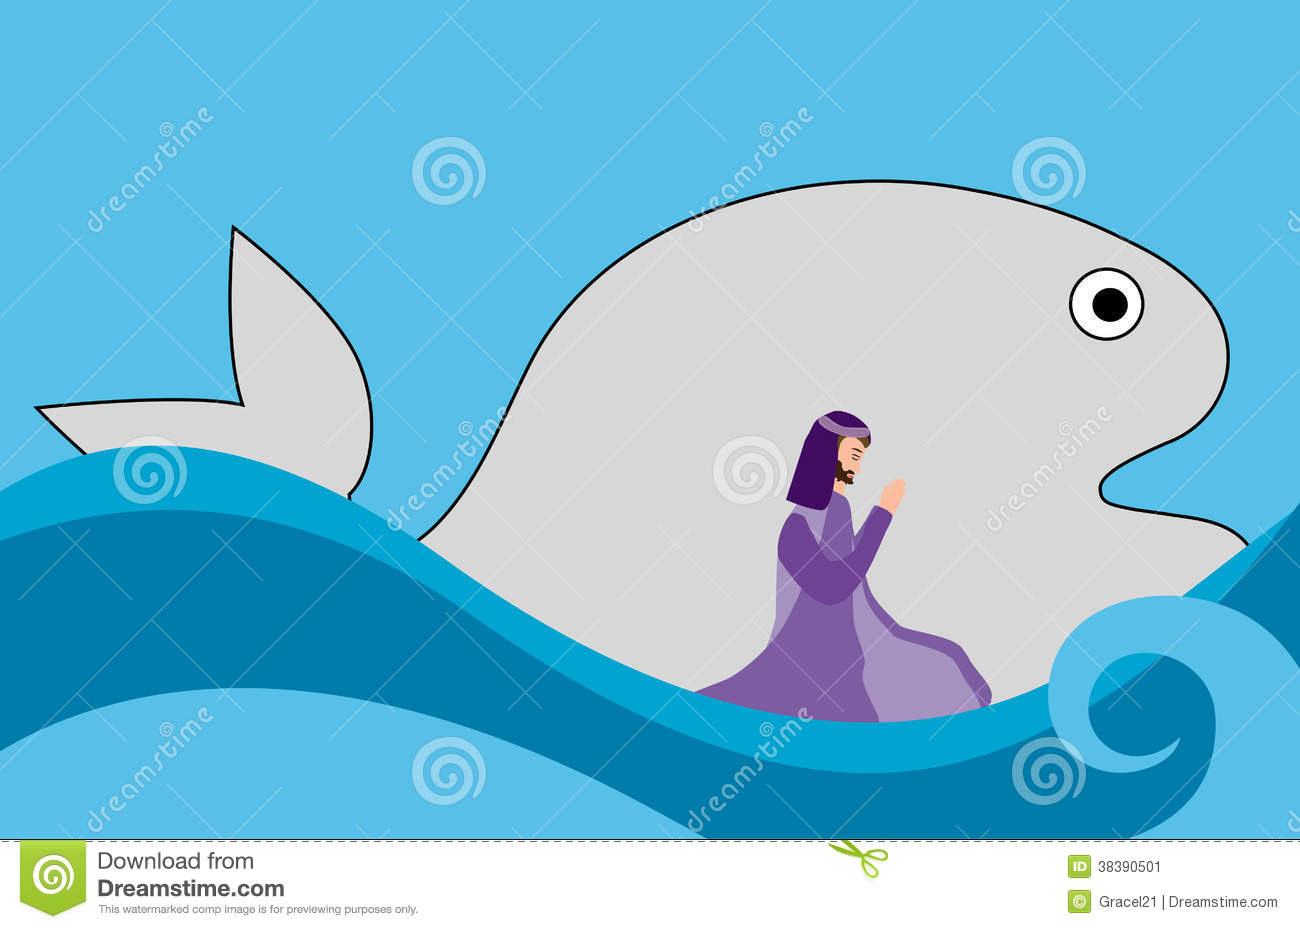 Jonah And Fish Stock Image - Image: 38390501